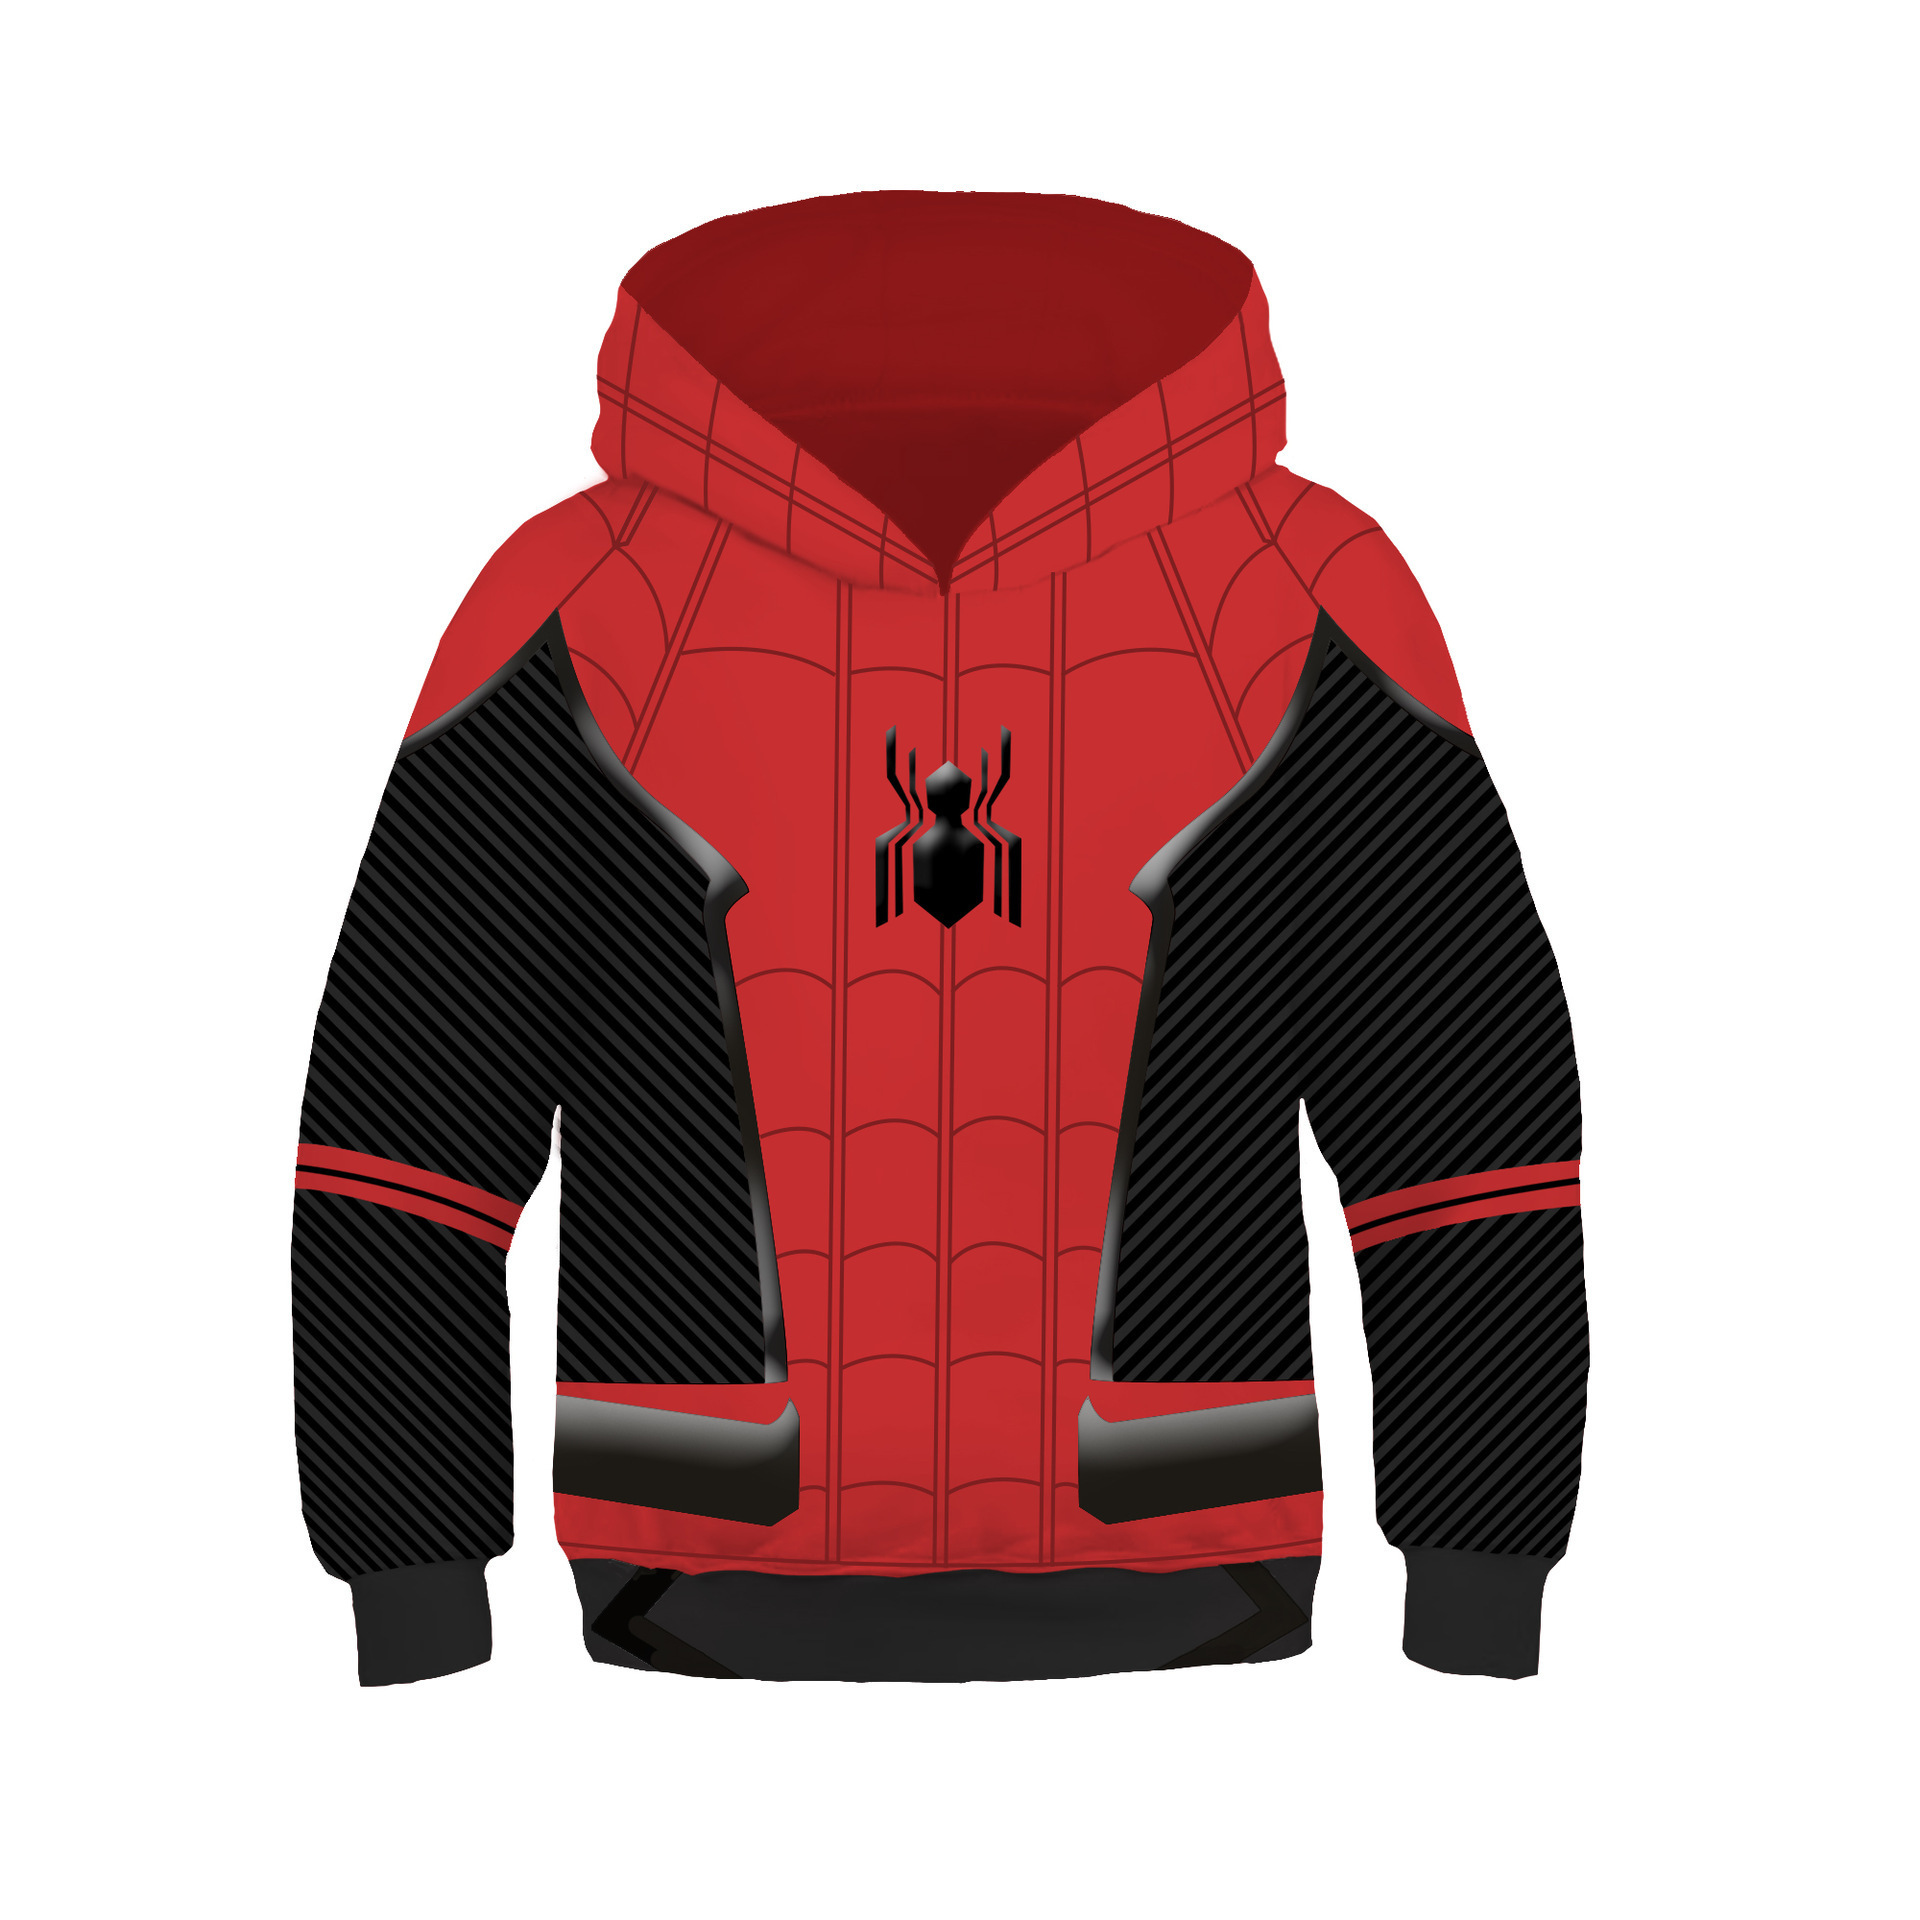 Kids Boys Spider Hoodies Cosplay  Far From Home Two Layer 3D Printed Costume  Super Hero  Sweatshirt For Halloween Party